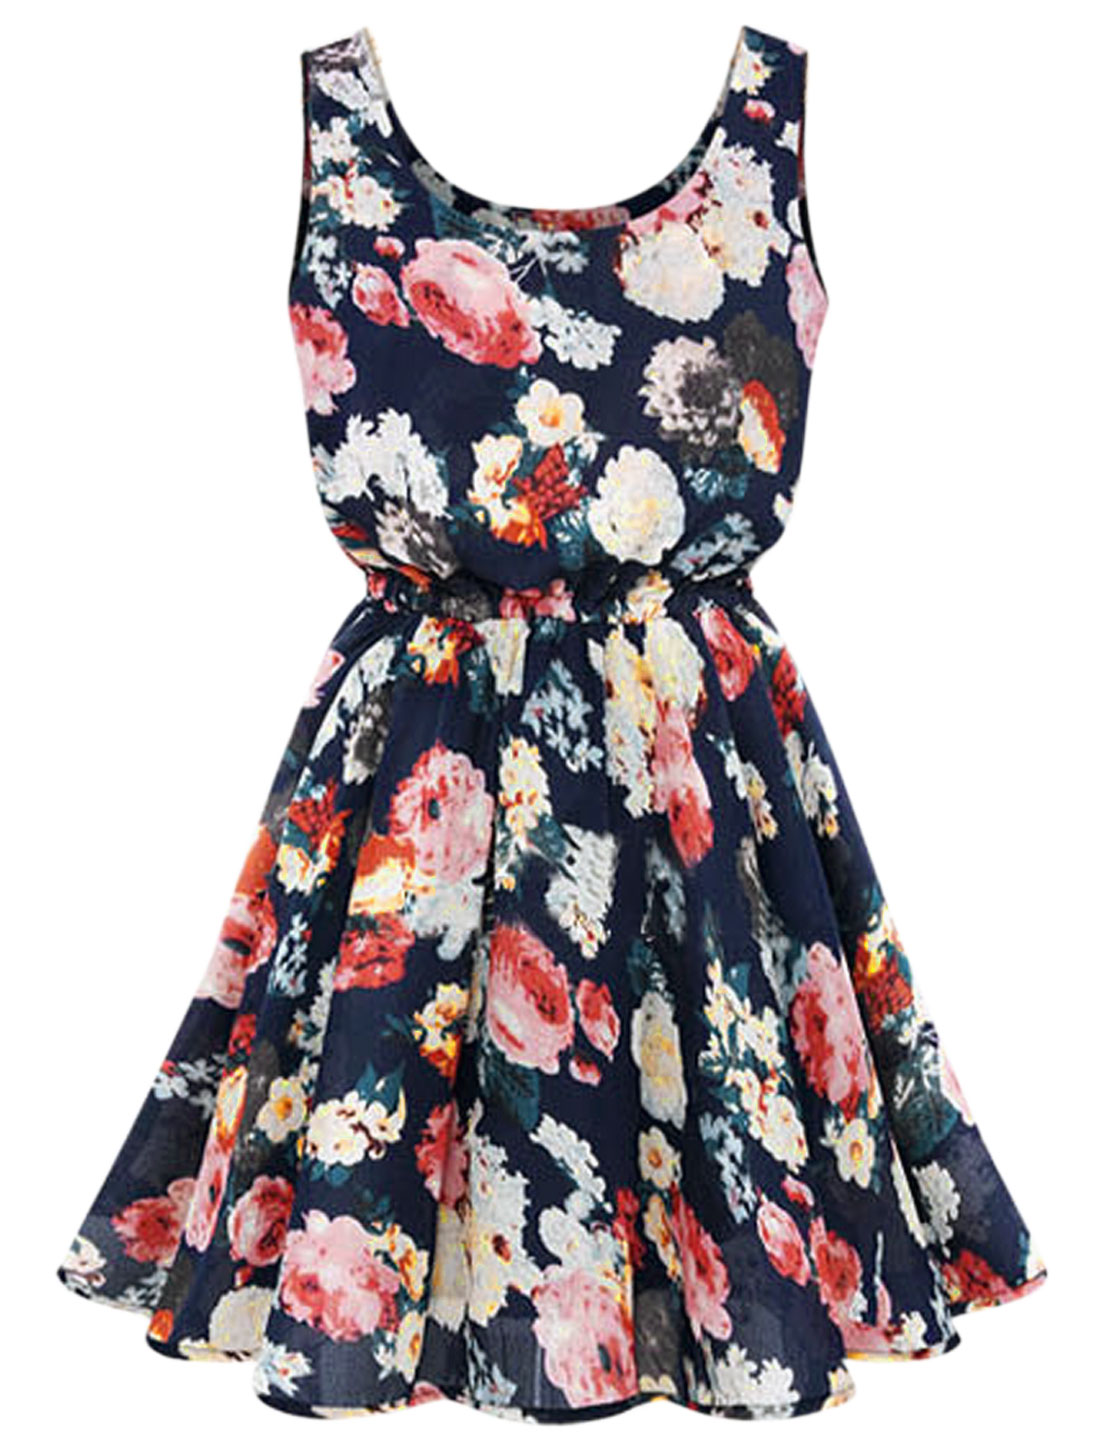 Lady Sleeveless Elastic Waist Floral Prints Fully Lined Dress Dark Blue M